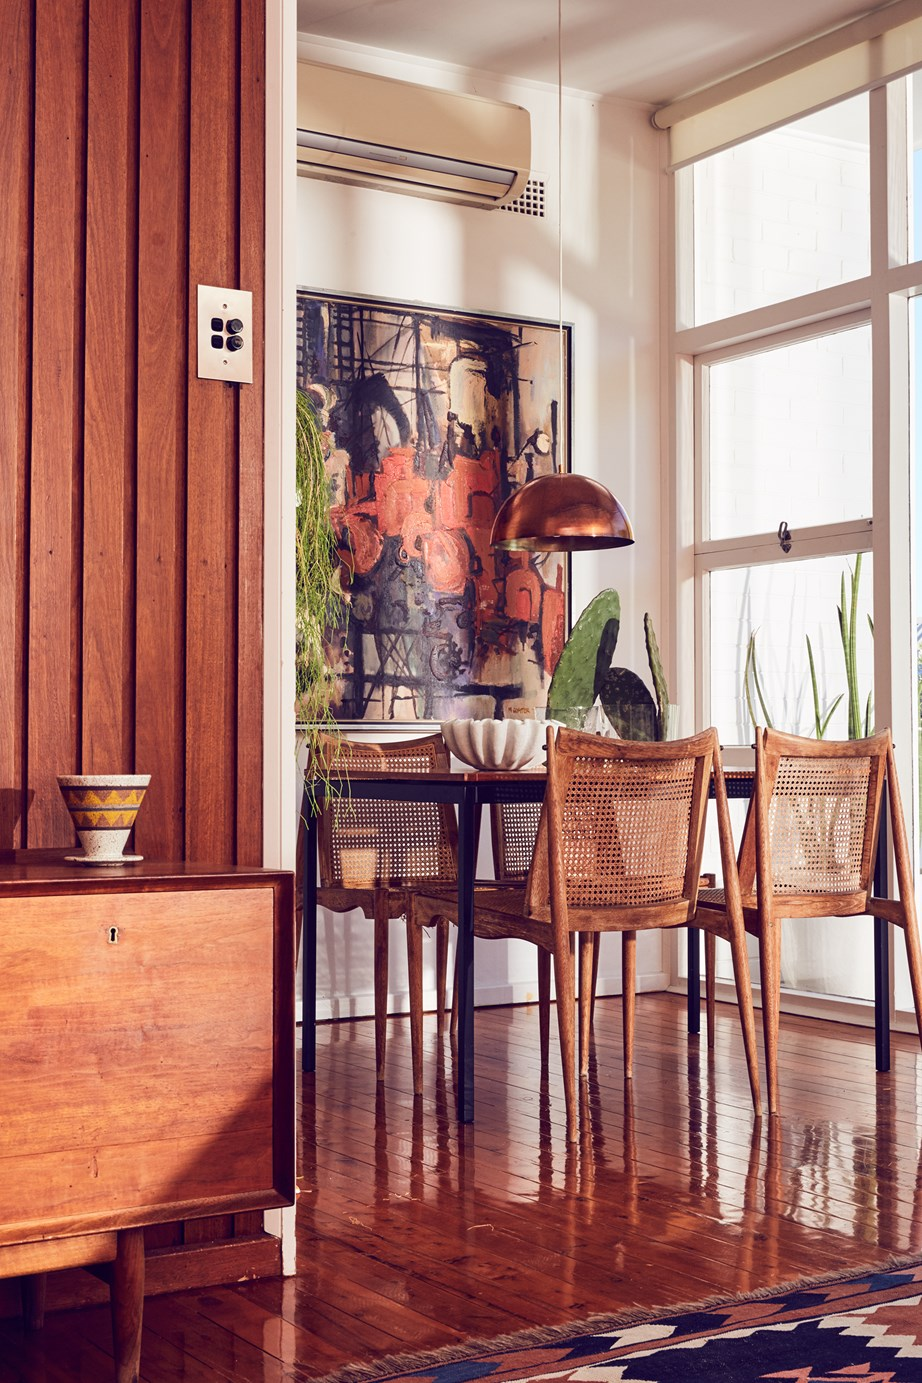 """Tim Ross is an advocate for Australian architecture, with a self-confessed soft spot (or obsession) with med-century design. His own abode, an original [1959 Modernist home](https://www.homestolove.com.au/mid-century-modern-homes-20366